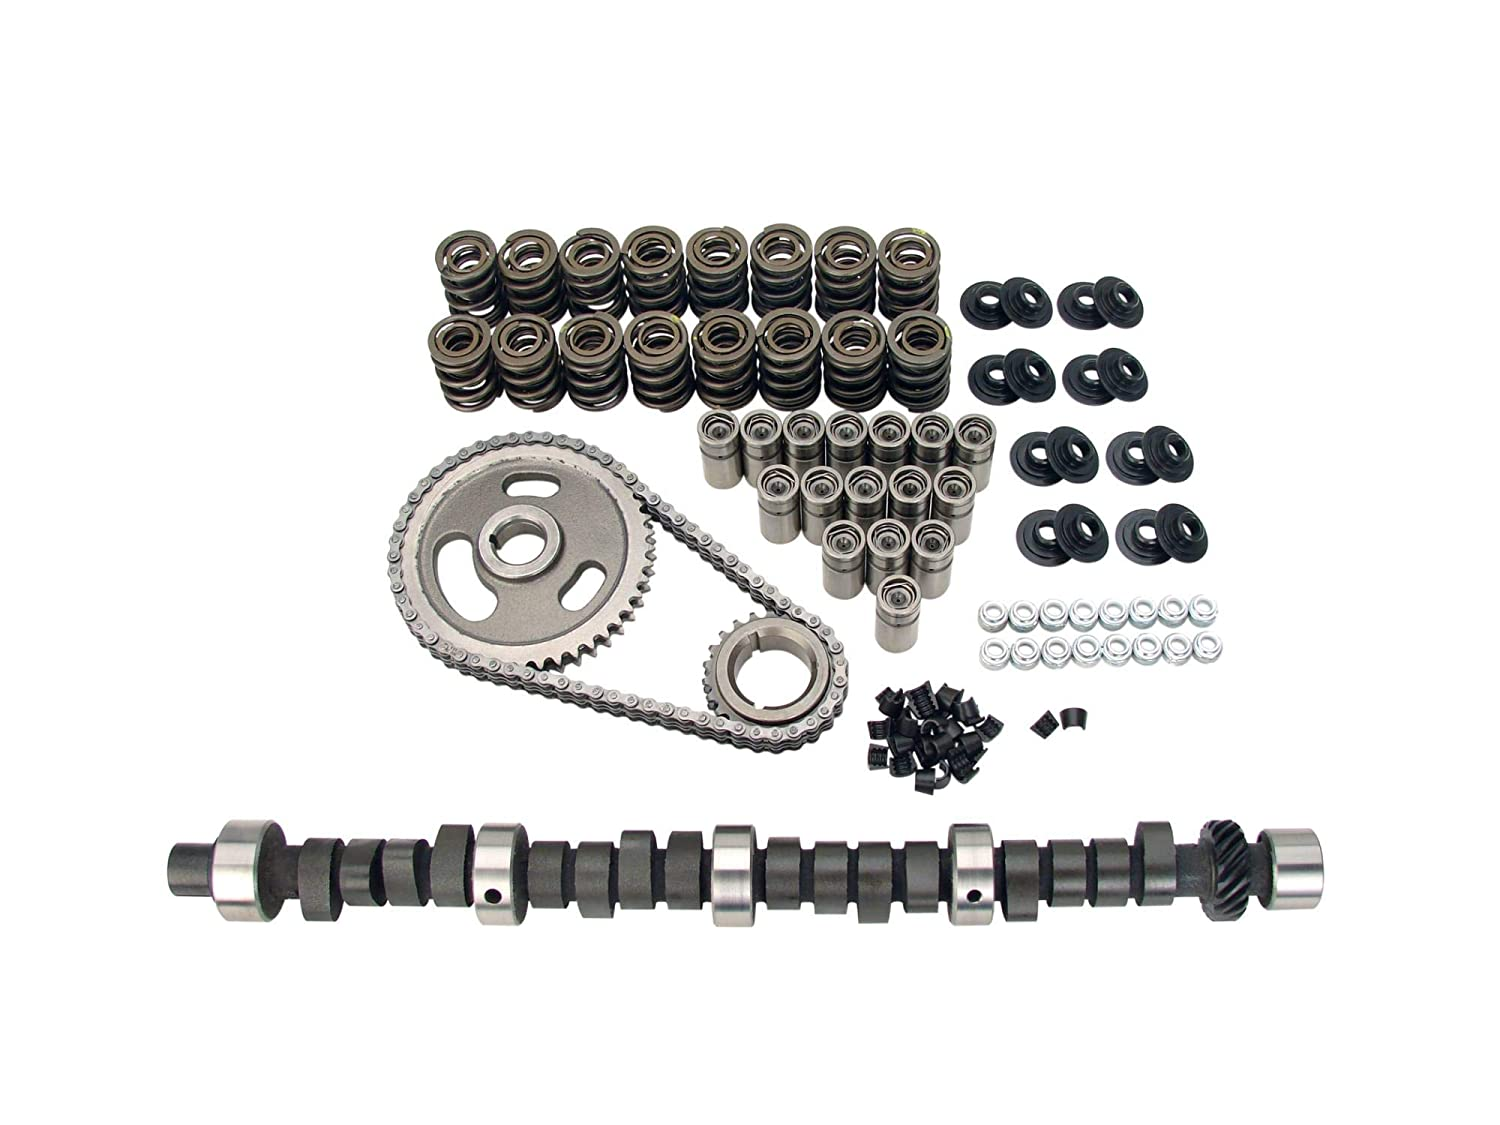 COMP Cams CL20-600-4 Thumpr 227//241 Hydraulic Flat Cam and Lifter Kit for Chrysler 273-360